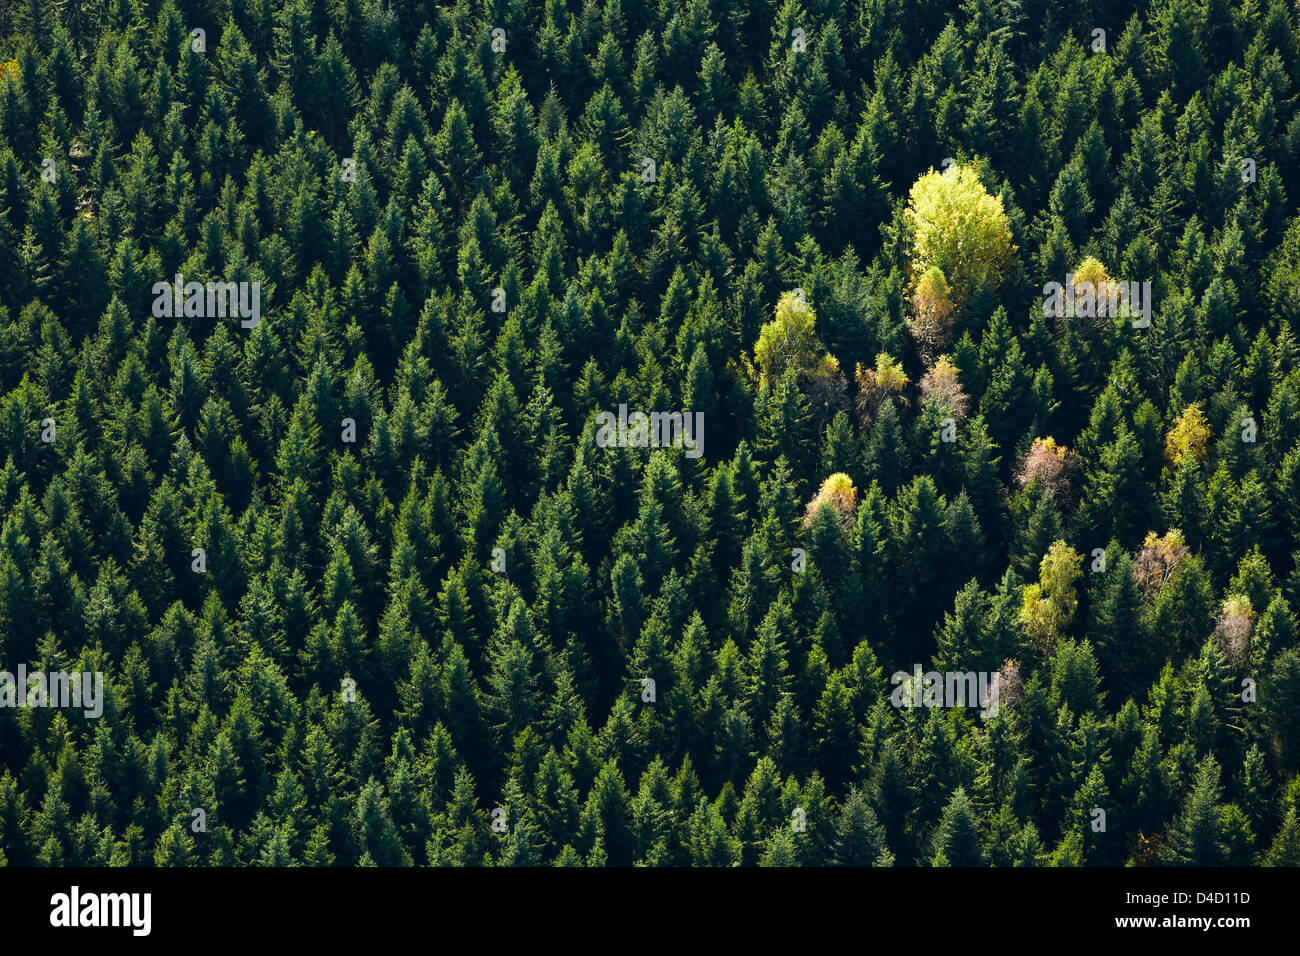 Autumnal conifer forest with some broadleaf trees, aerial photo - Stock Image